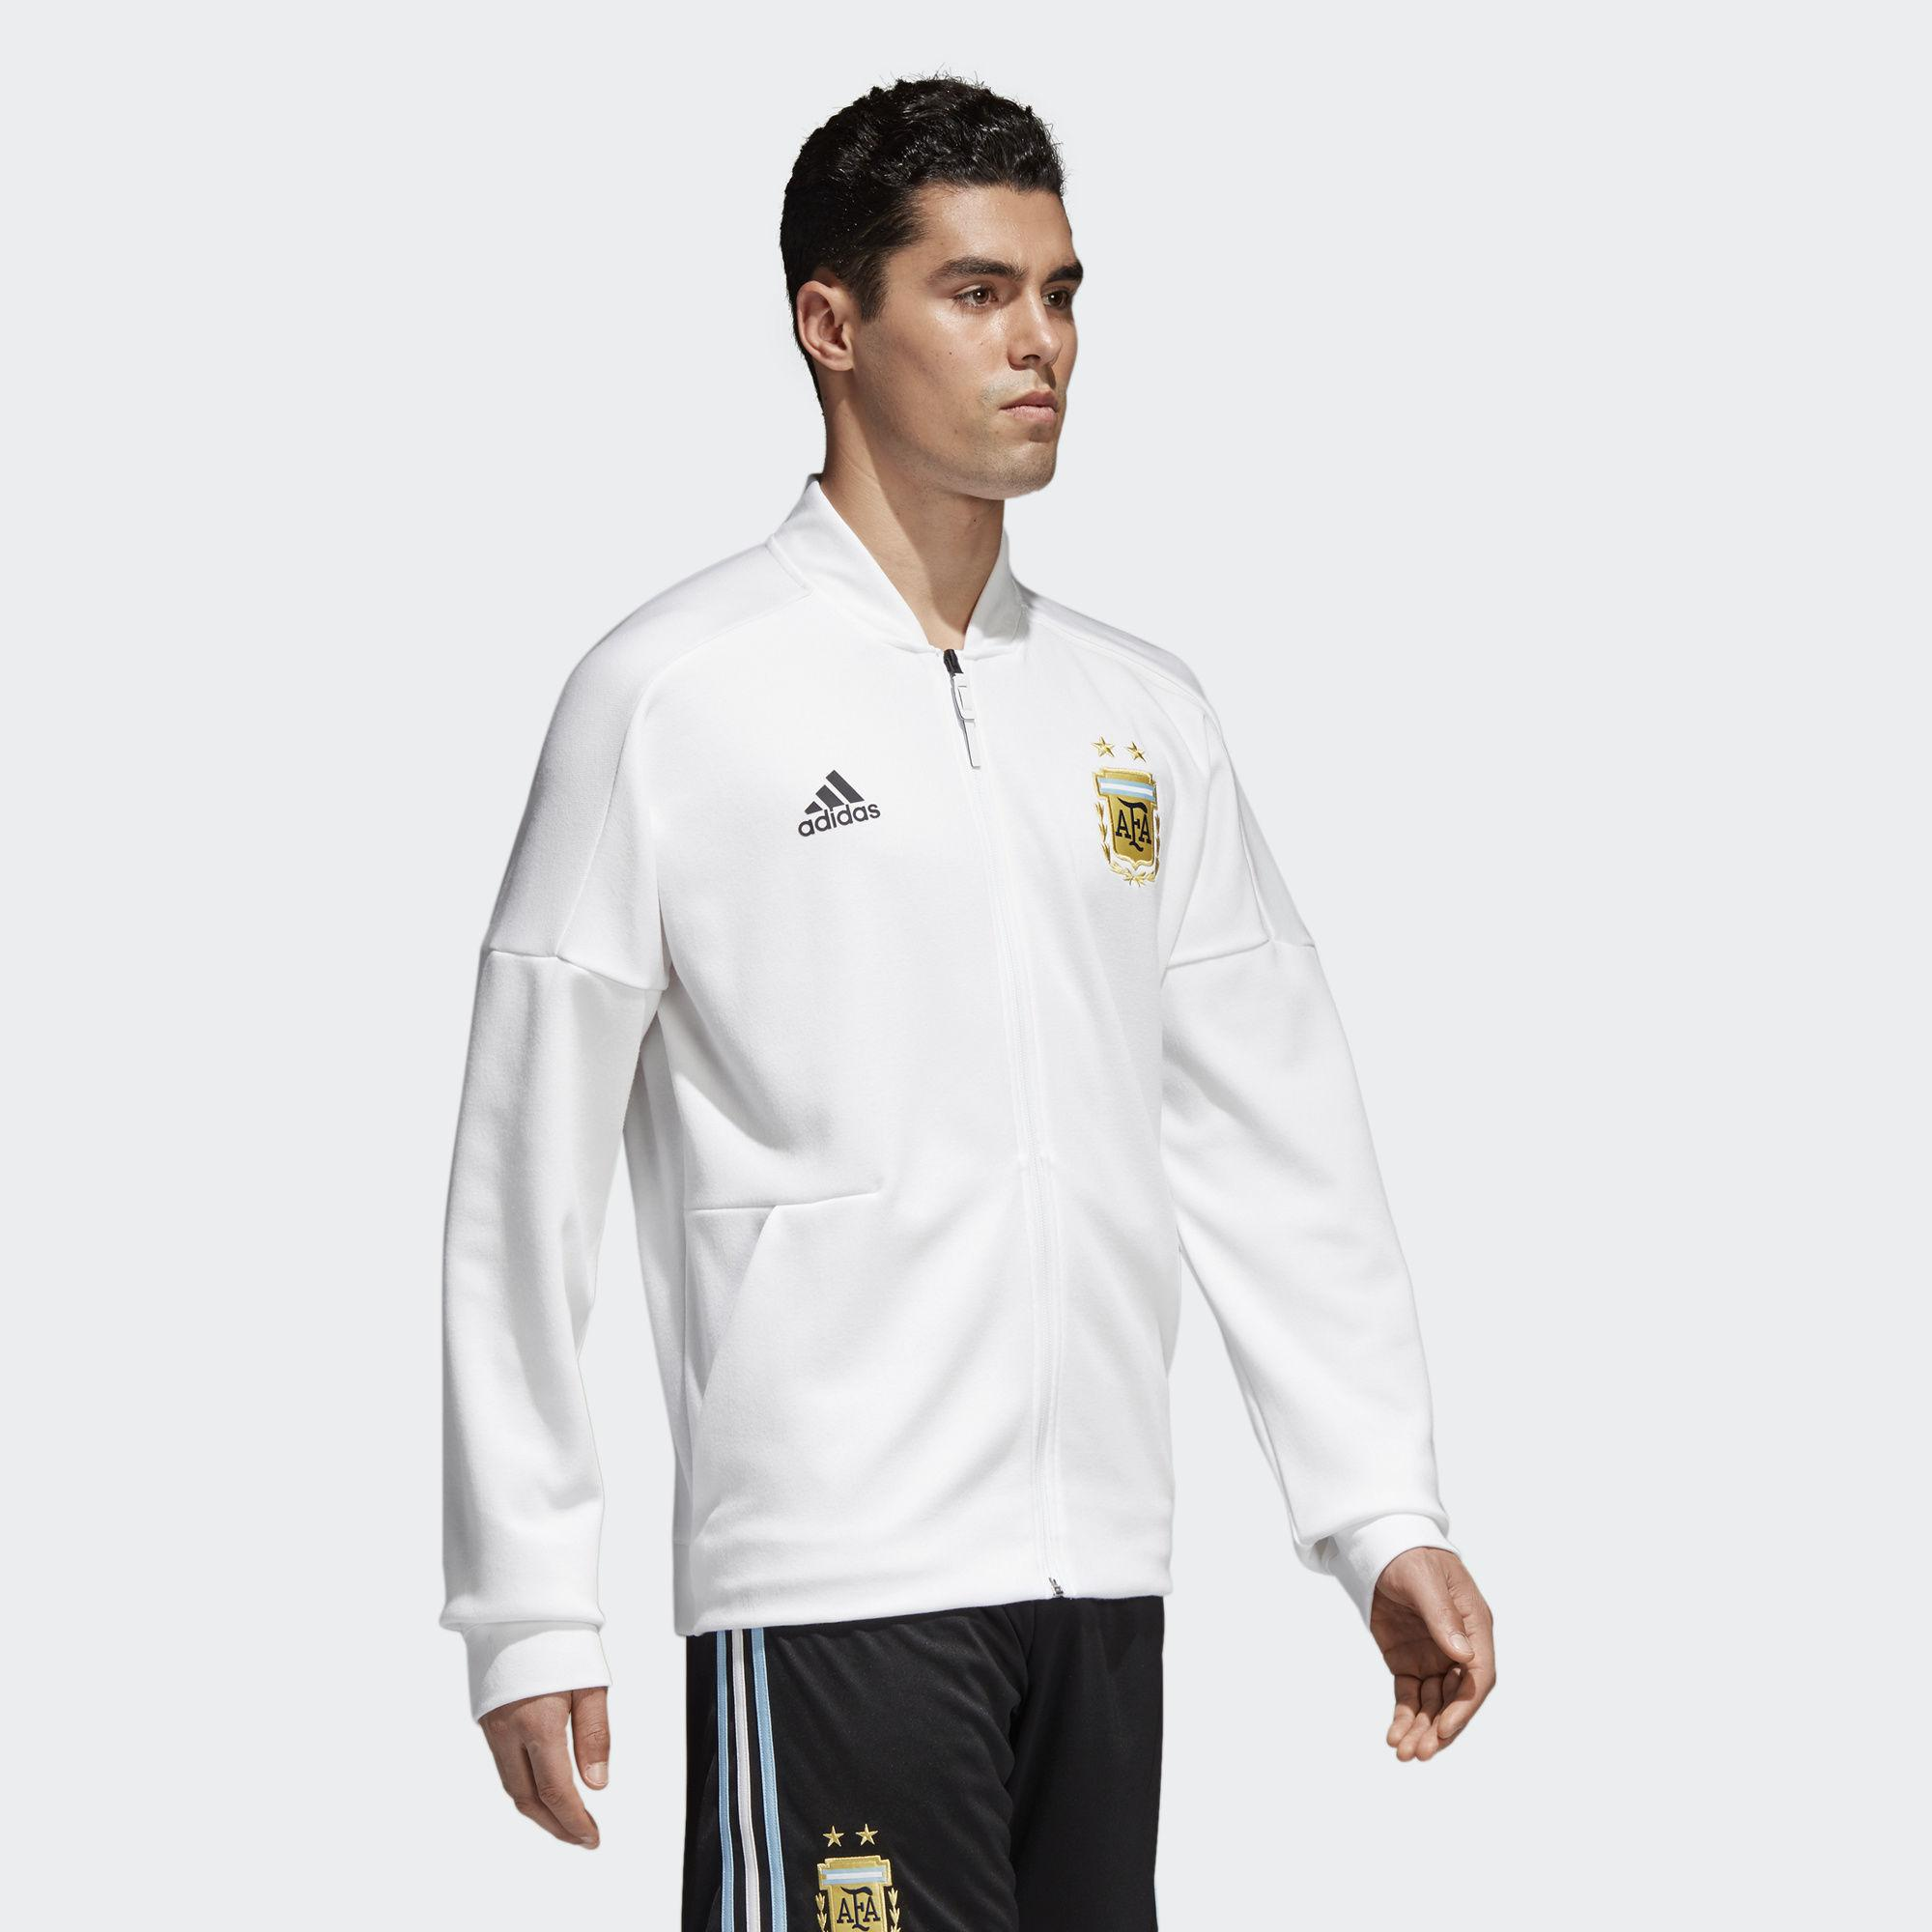 adidas Cotton Argentina Z.n.e. Jacket in White for Men